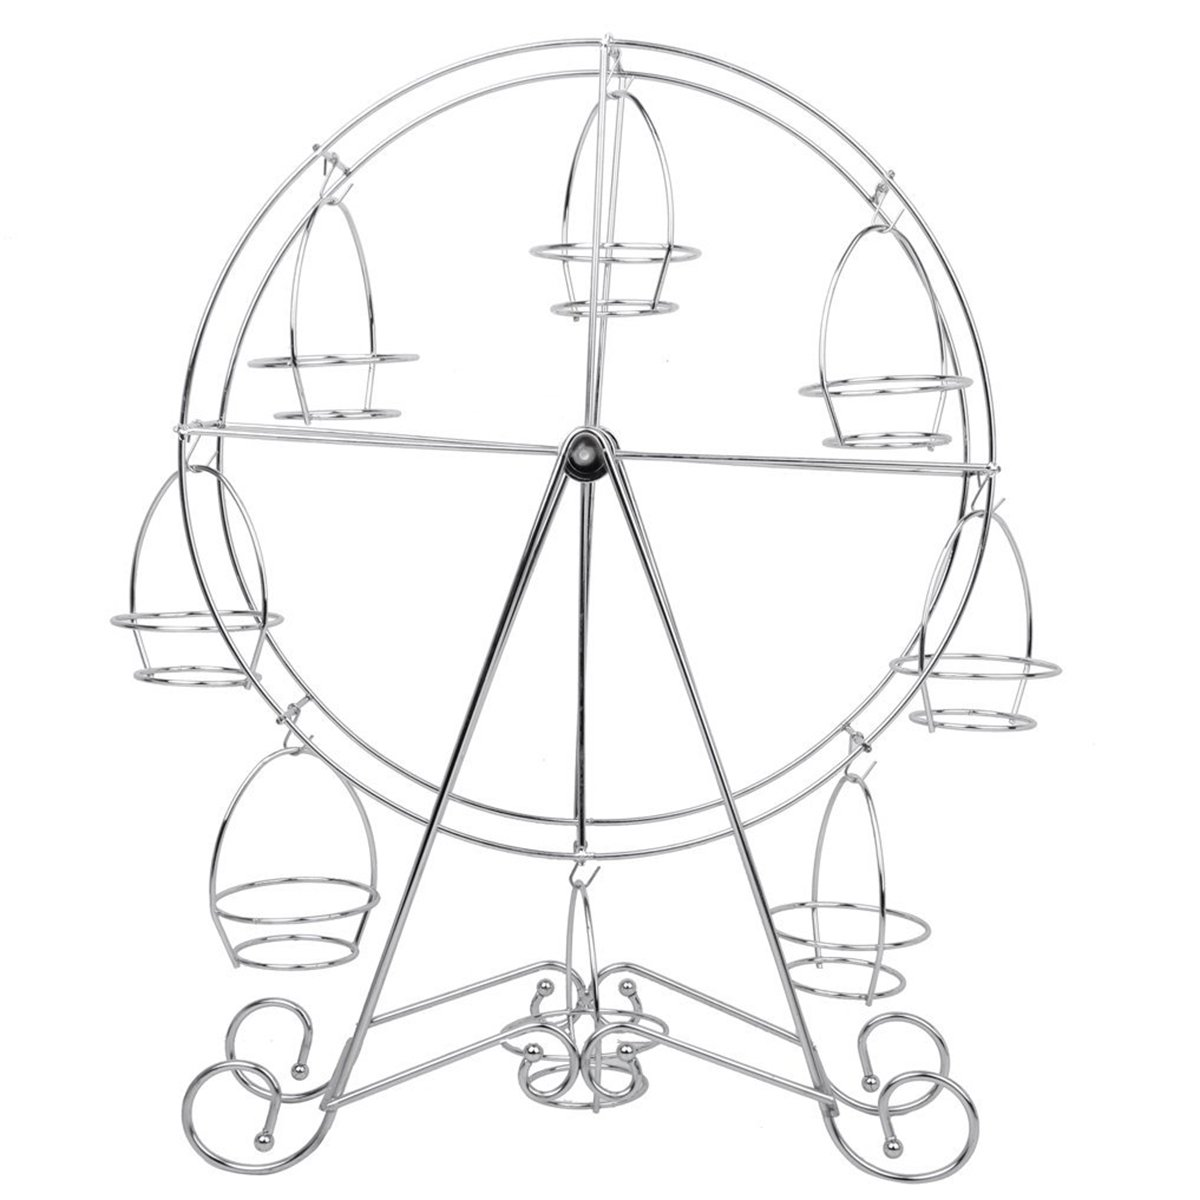 Tinksky Stainless Steel 8-Cup Round Rotating Ferris Wheel Cupcake Stand